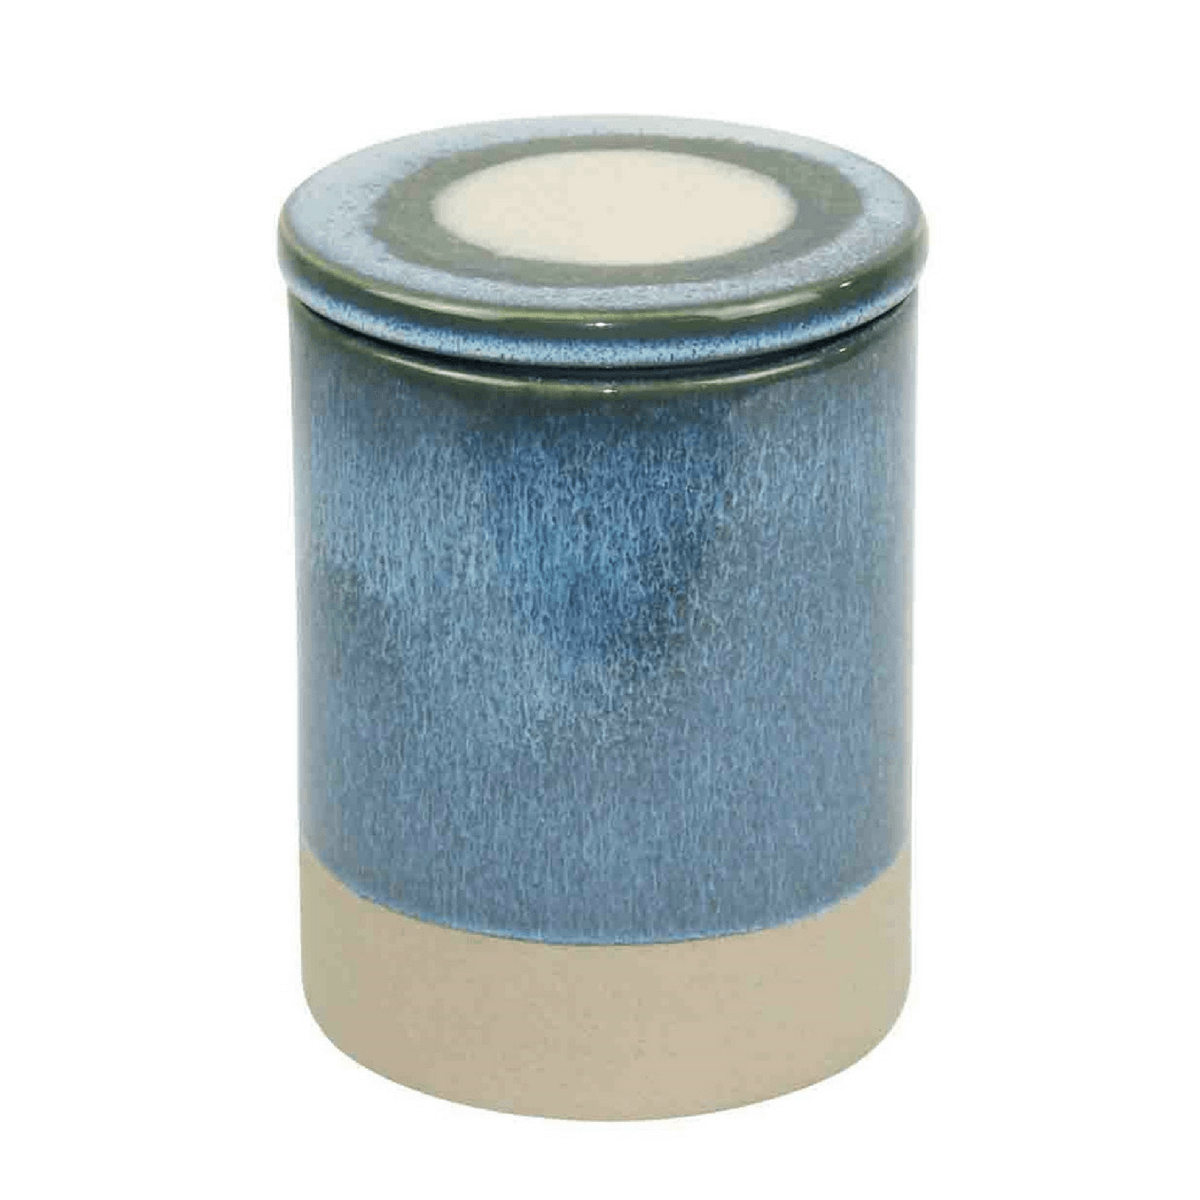 Blue and Purple Glazed Ceramic Canisters - Set of 2 with Lids